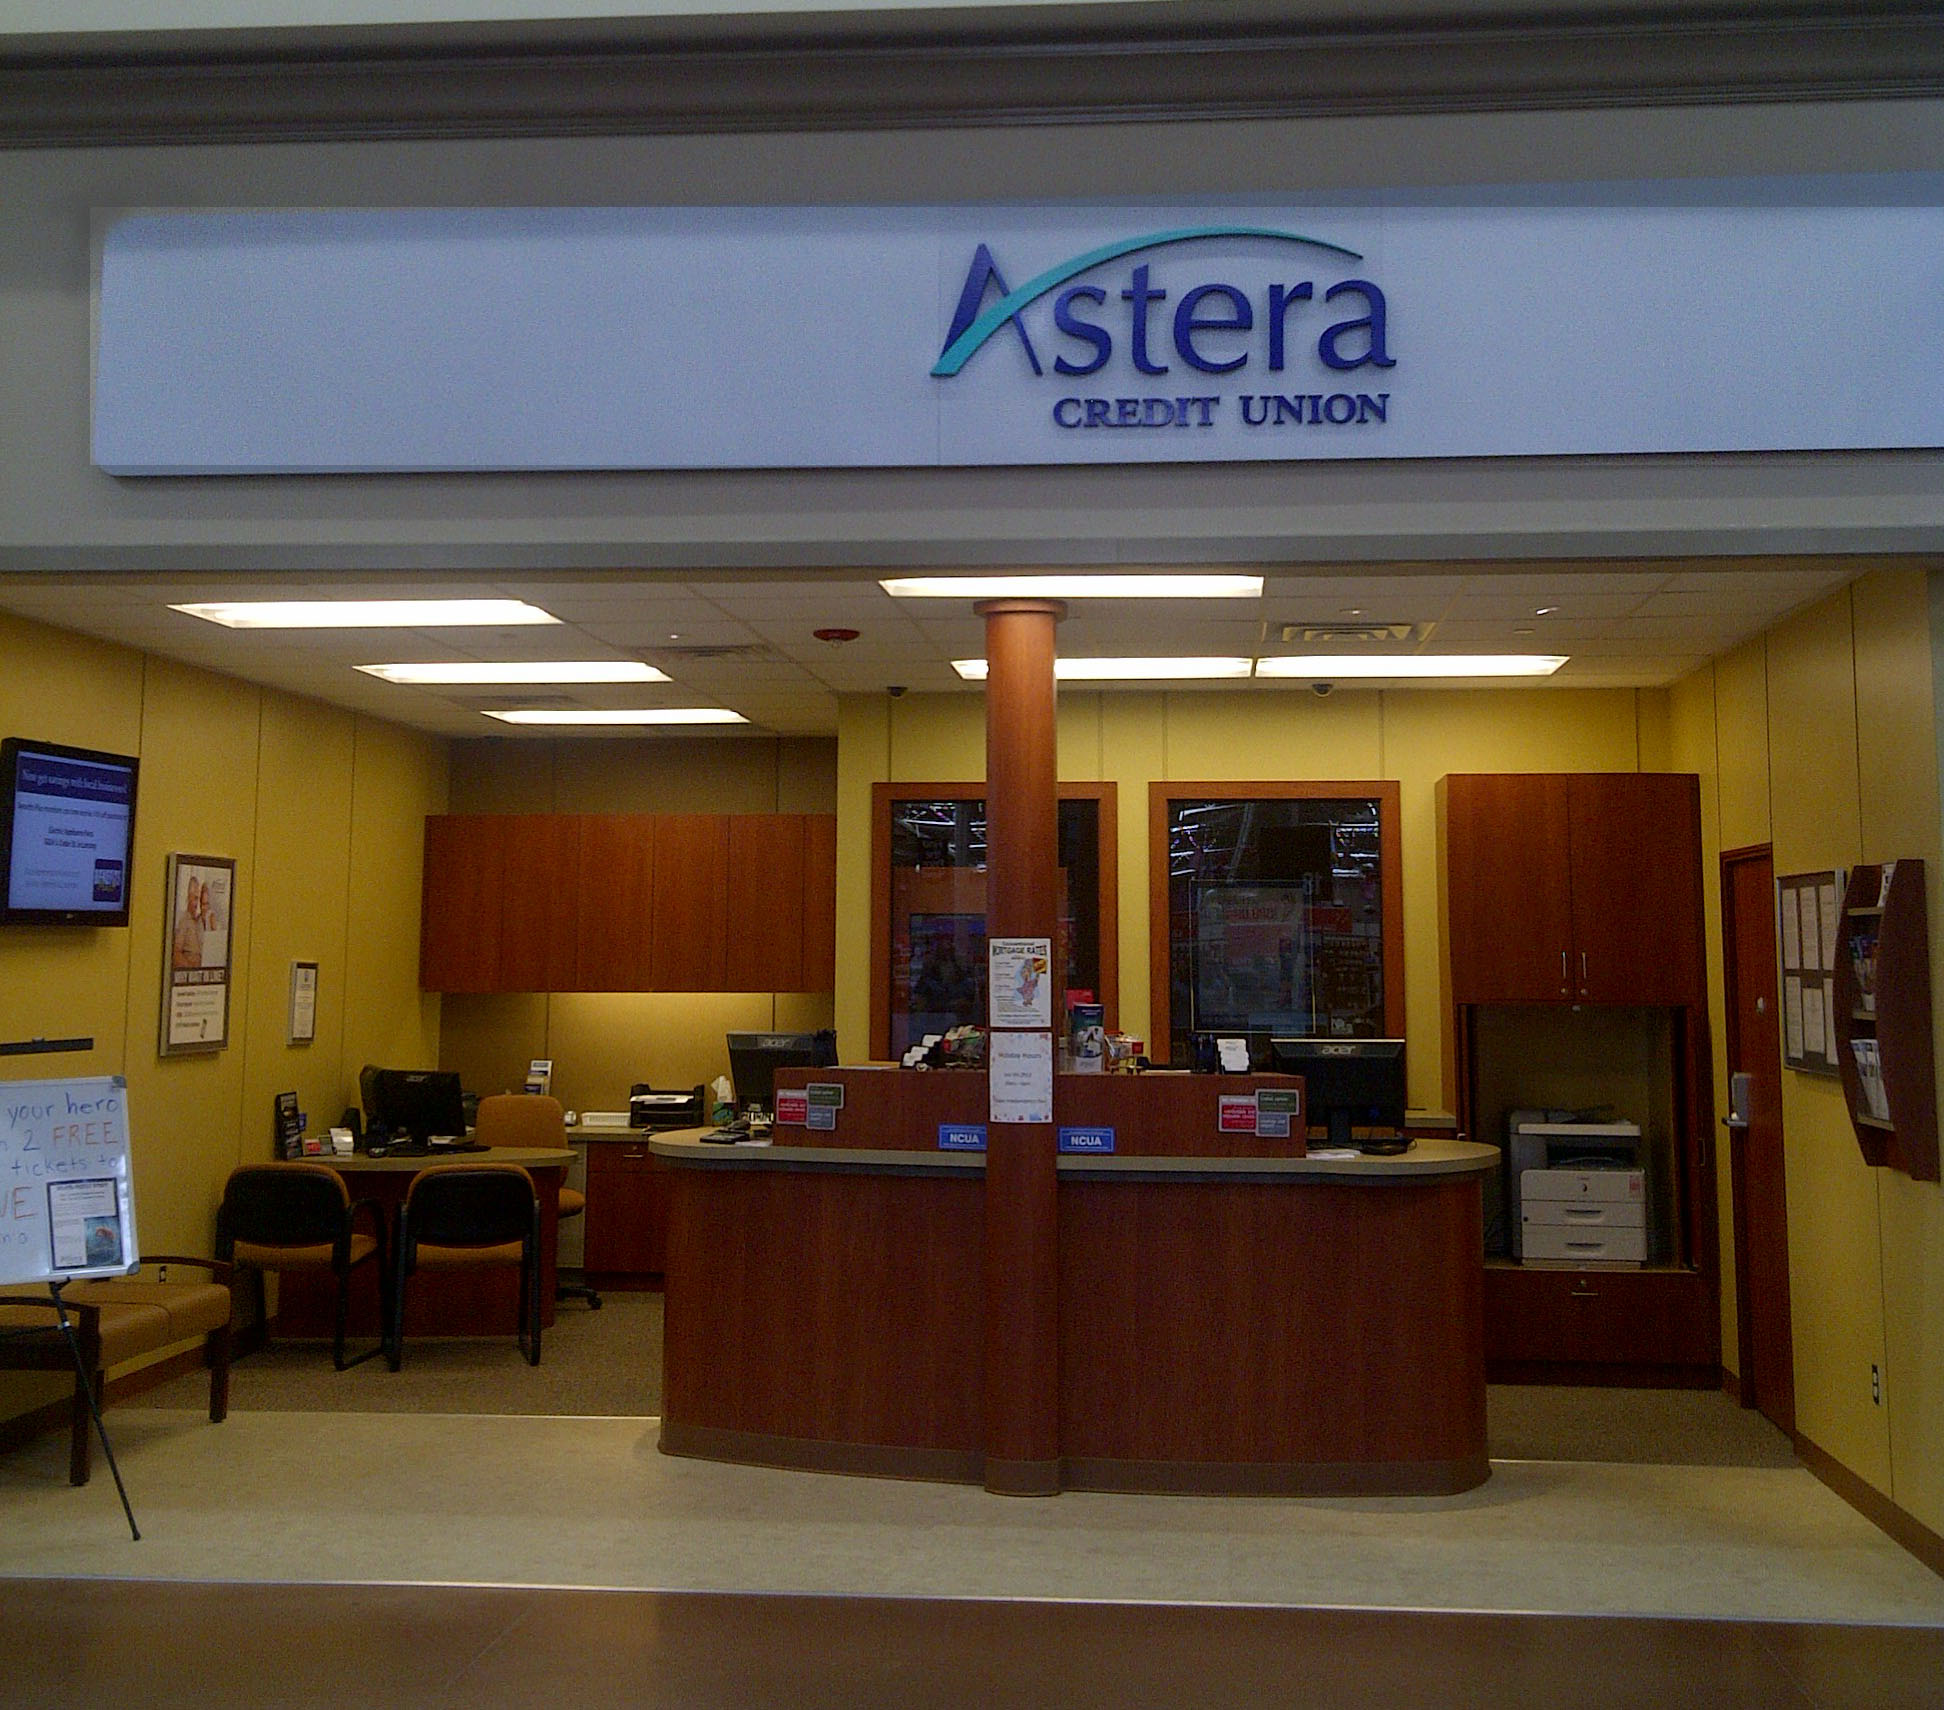 astera credit union 10772 w carson city rd, greenville, mi 48838